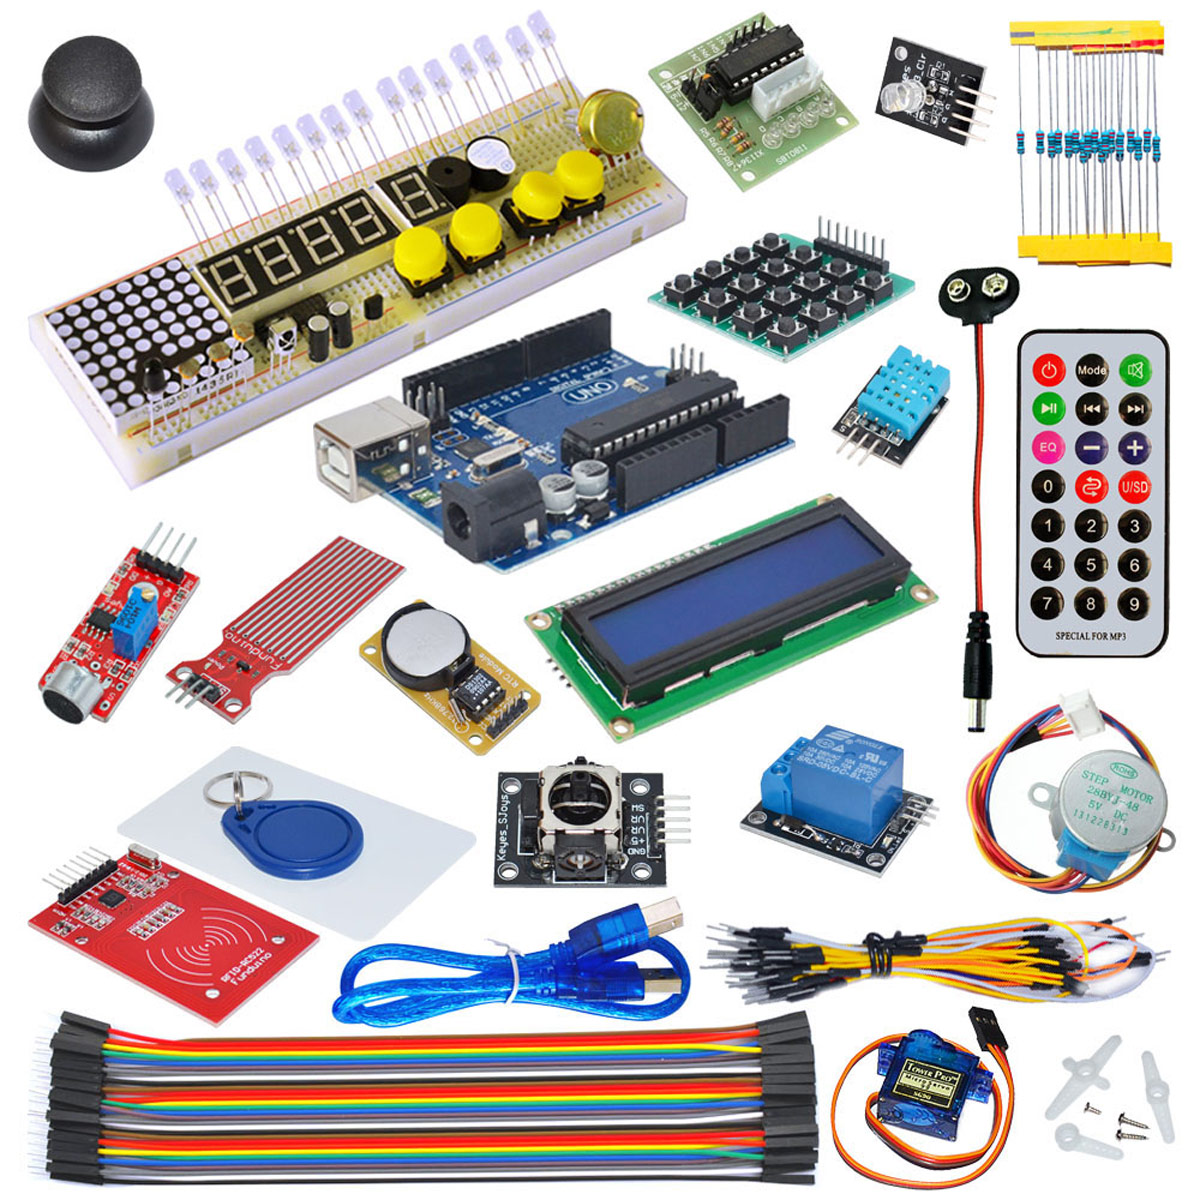 Gearbest Uk Kt002 Arduino Uno R3 Starter Kit 5468 Free Shipping 12v Stepper Motor Geared 4 Phase 5 Wires For Experiment Compatible Upgraded Version With Rfid Diy Network Learning